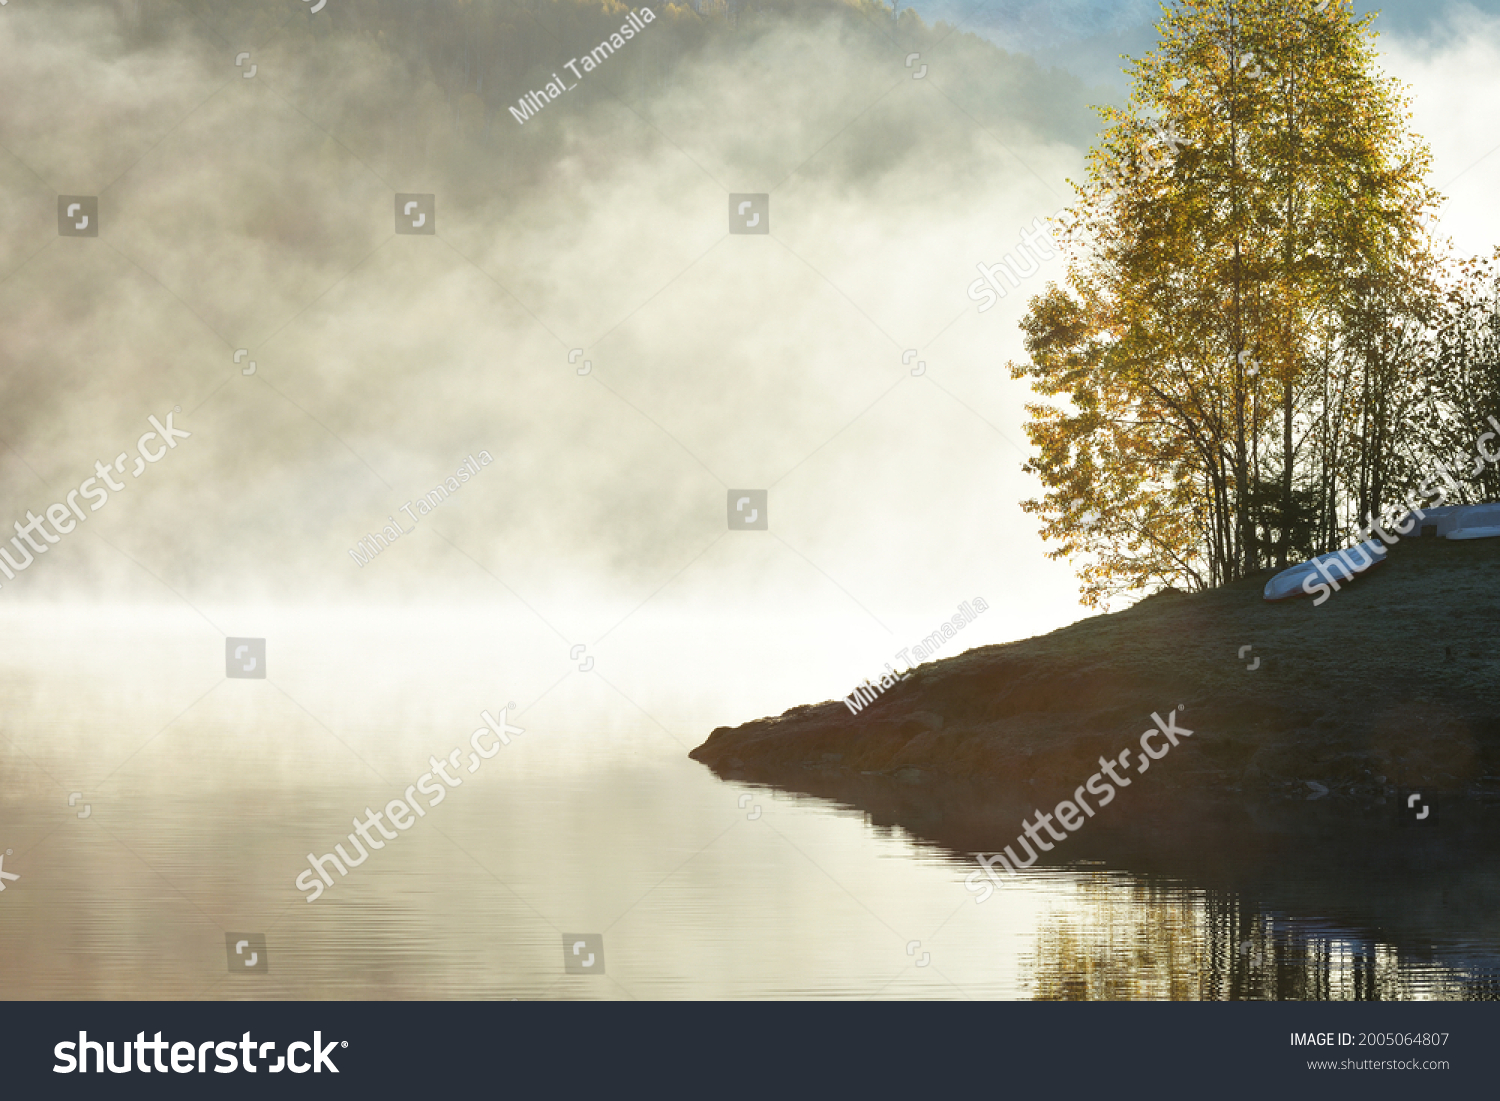 Fog covering the lake in autumn, forest reflection and sunlight